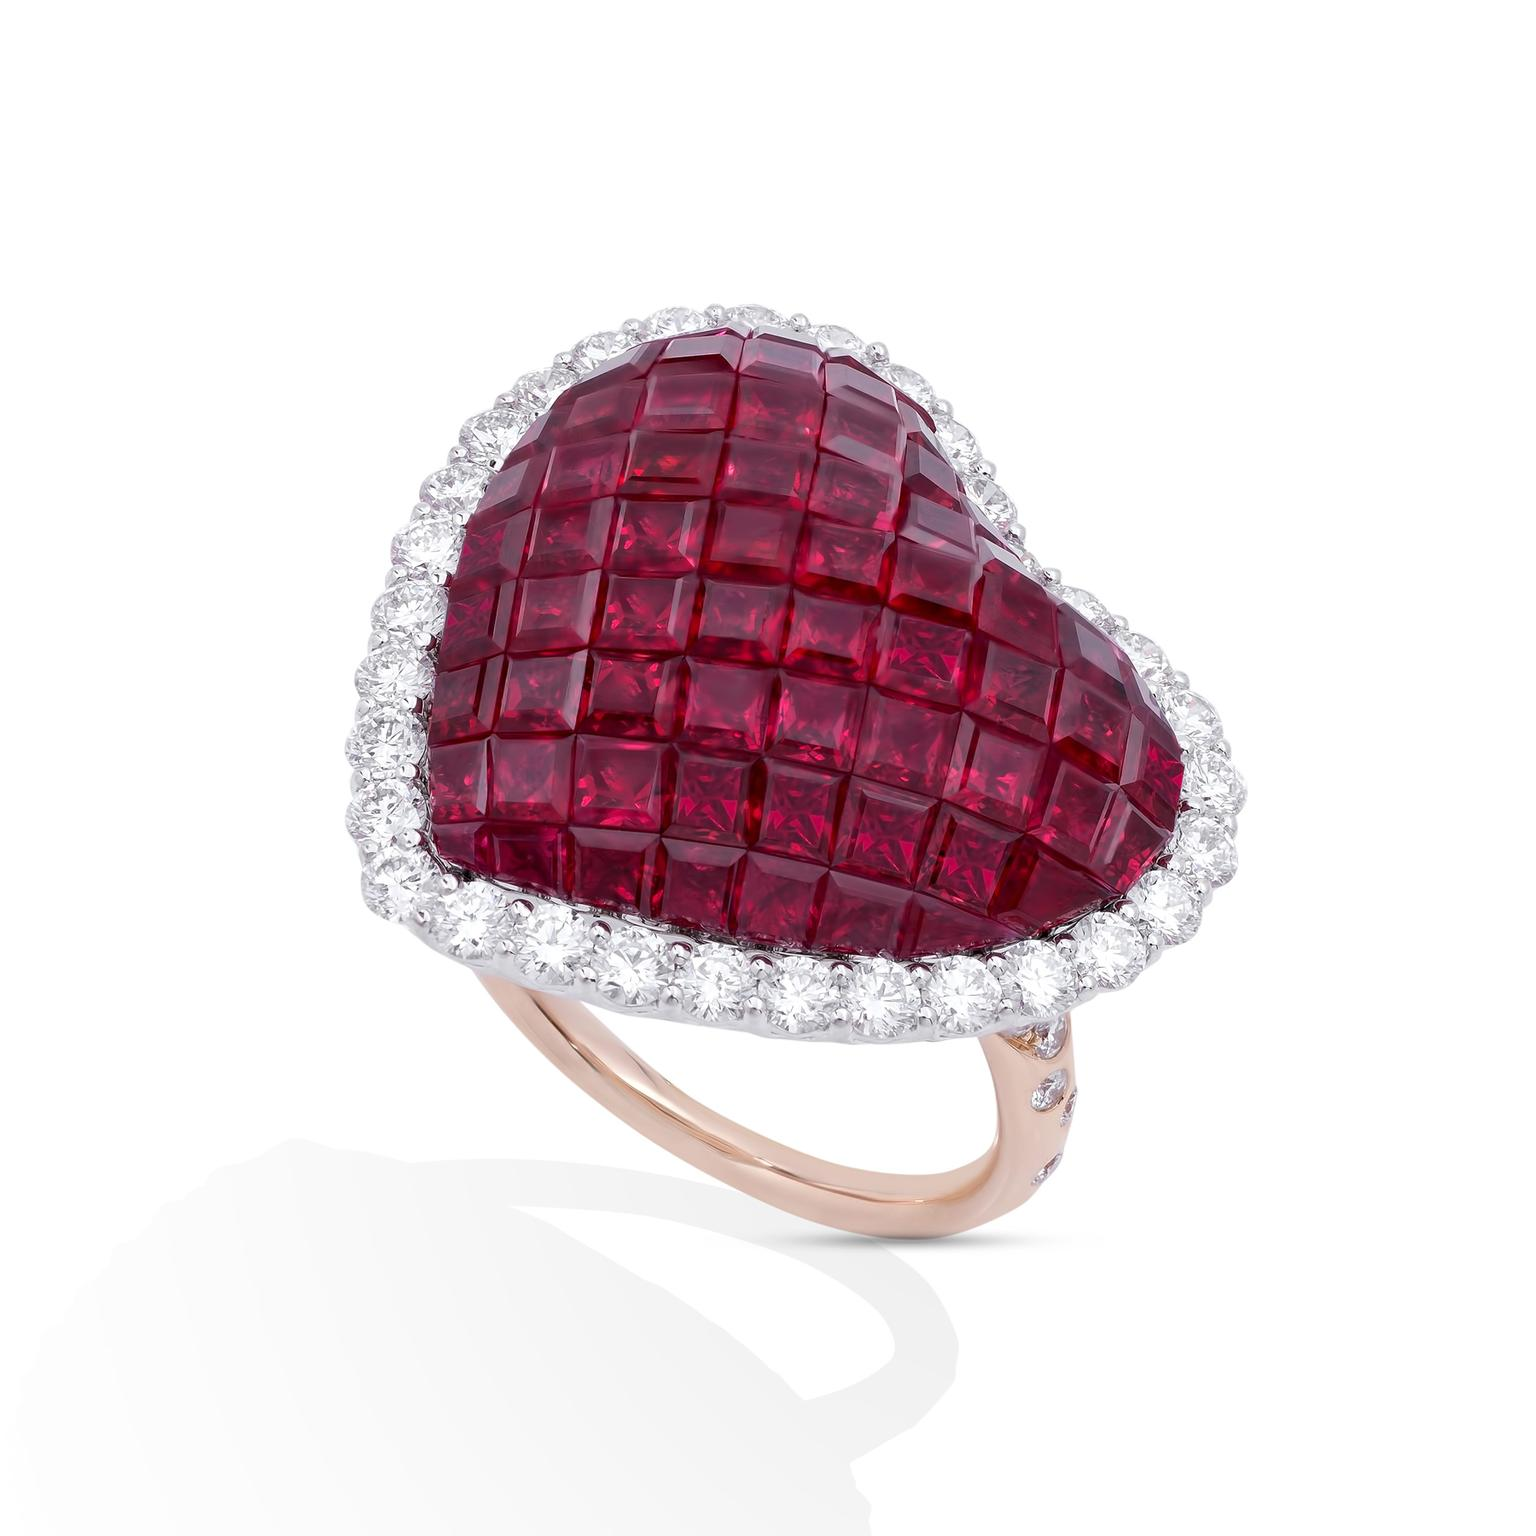 Stenzhorn Love Keepers Mosaic ruby ring